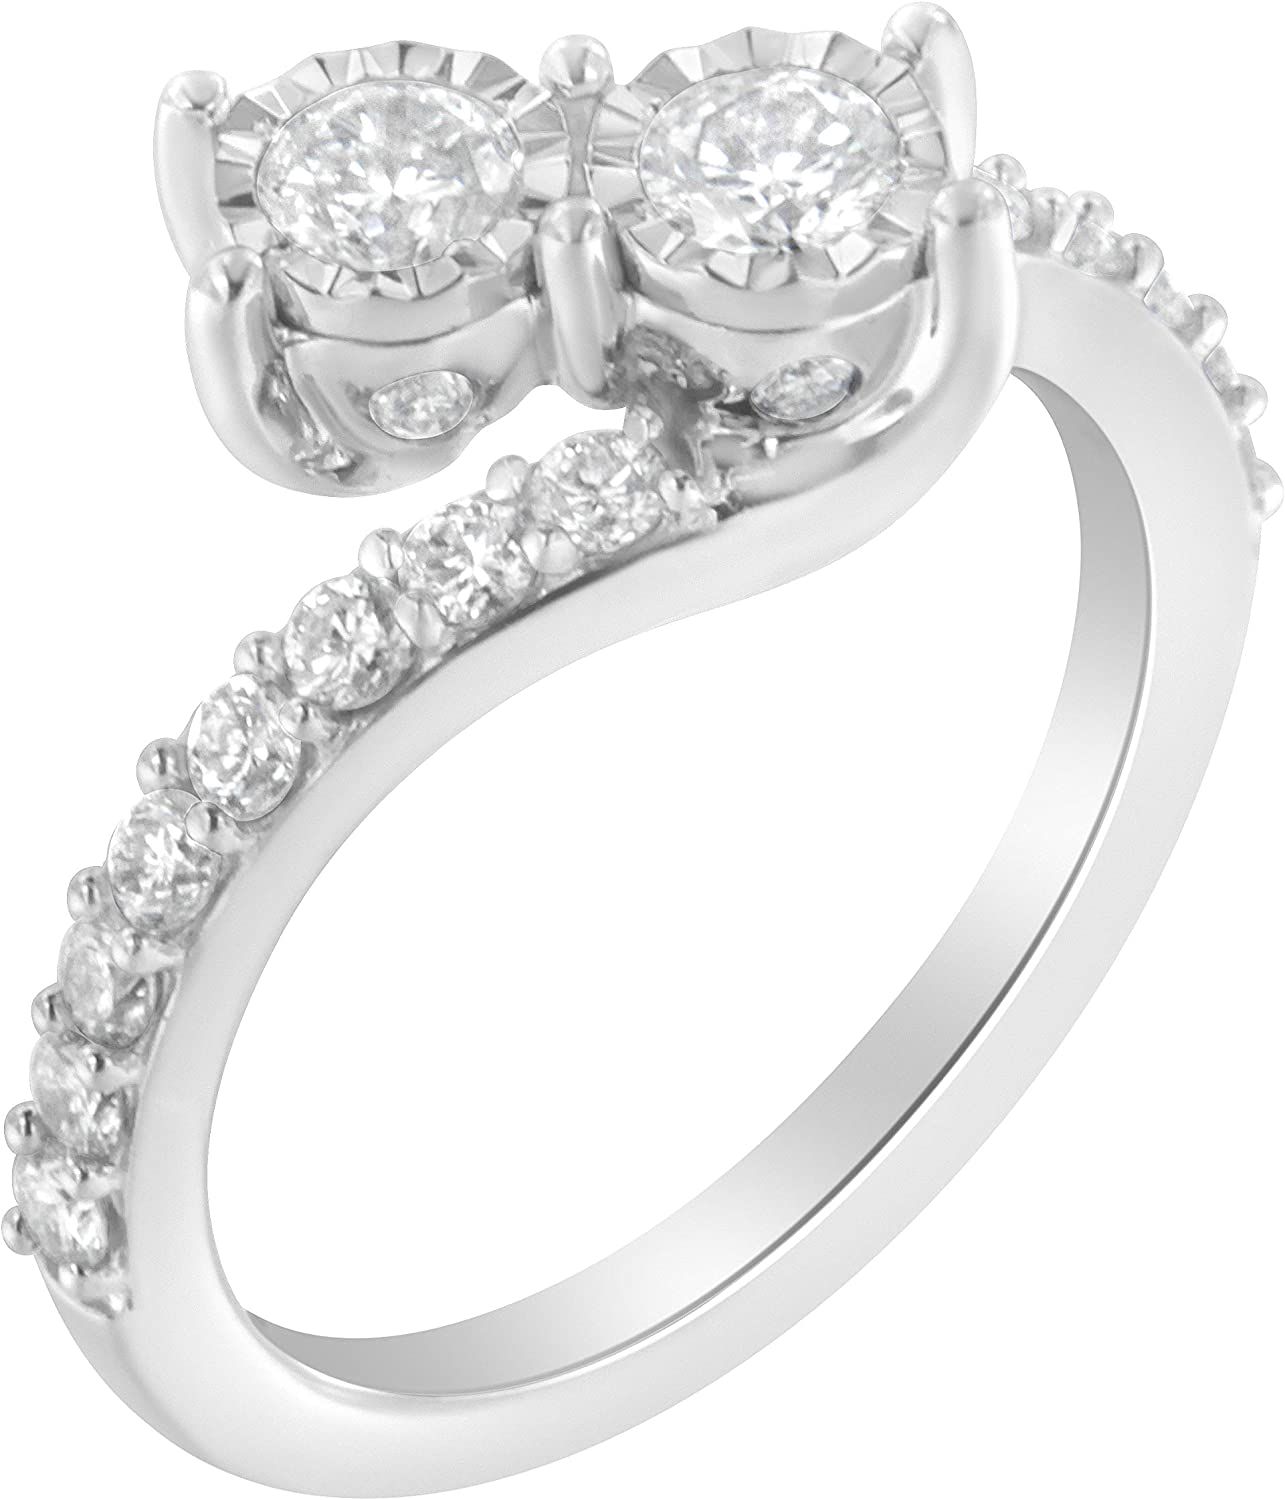 10K Princess Diamond Accent Bypass Engagement Ring Size 7 White Gold